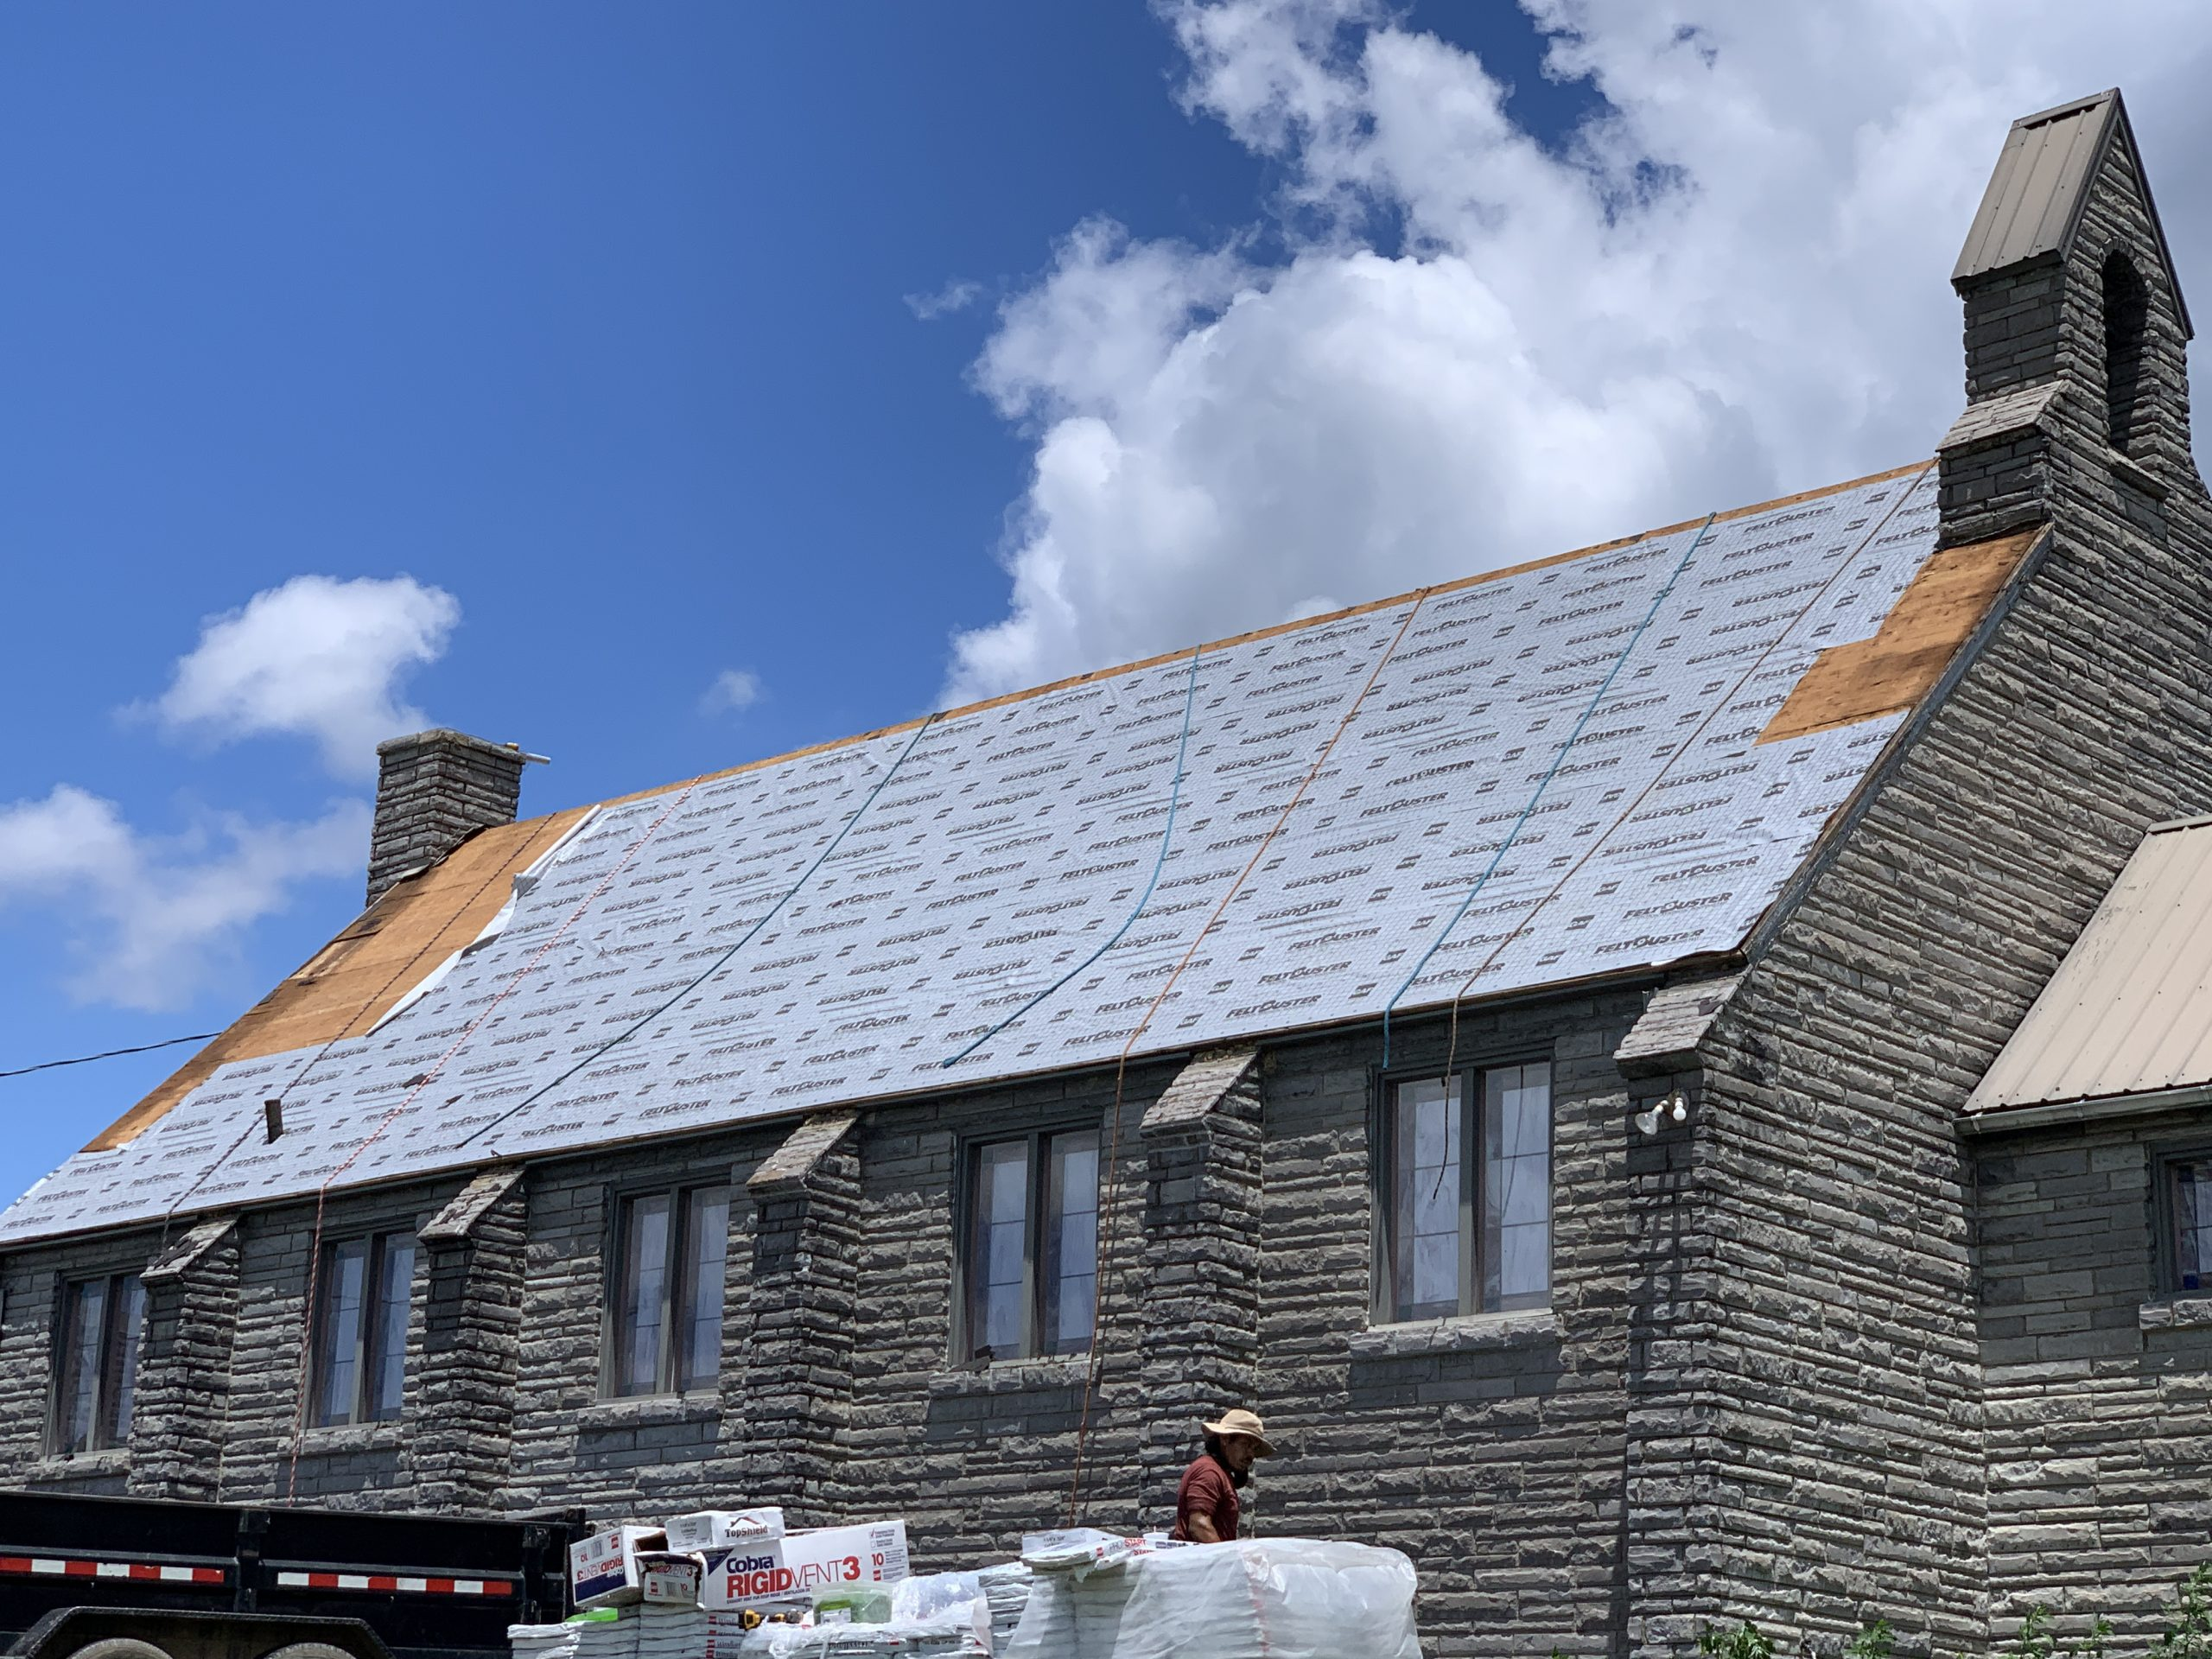 This is the view of the slope of the roof with GAF Feltbuster installed.